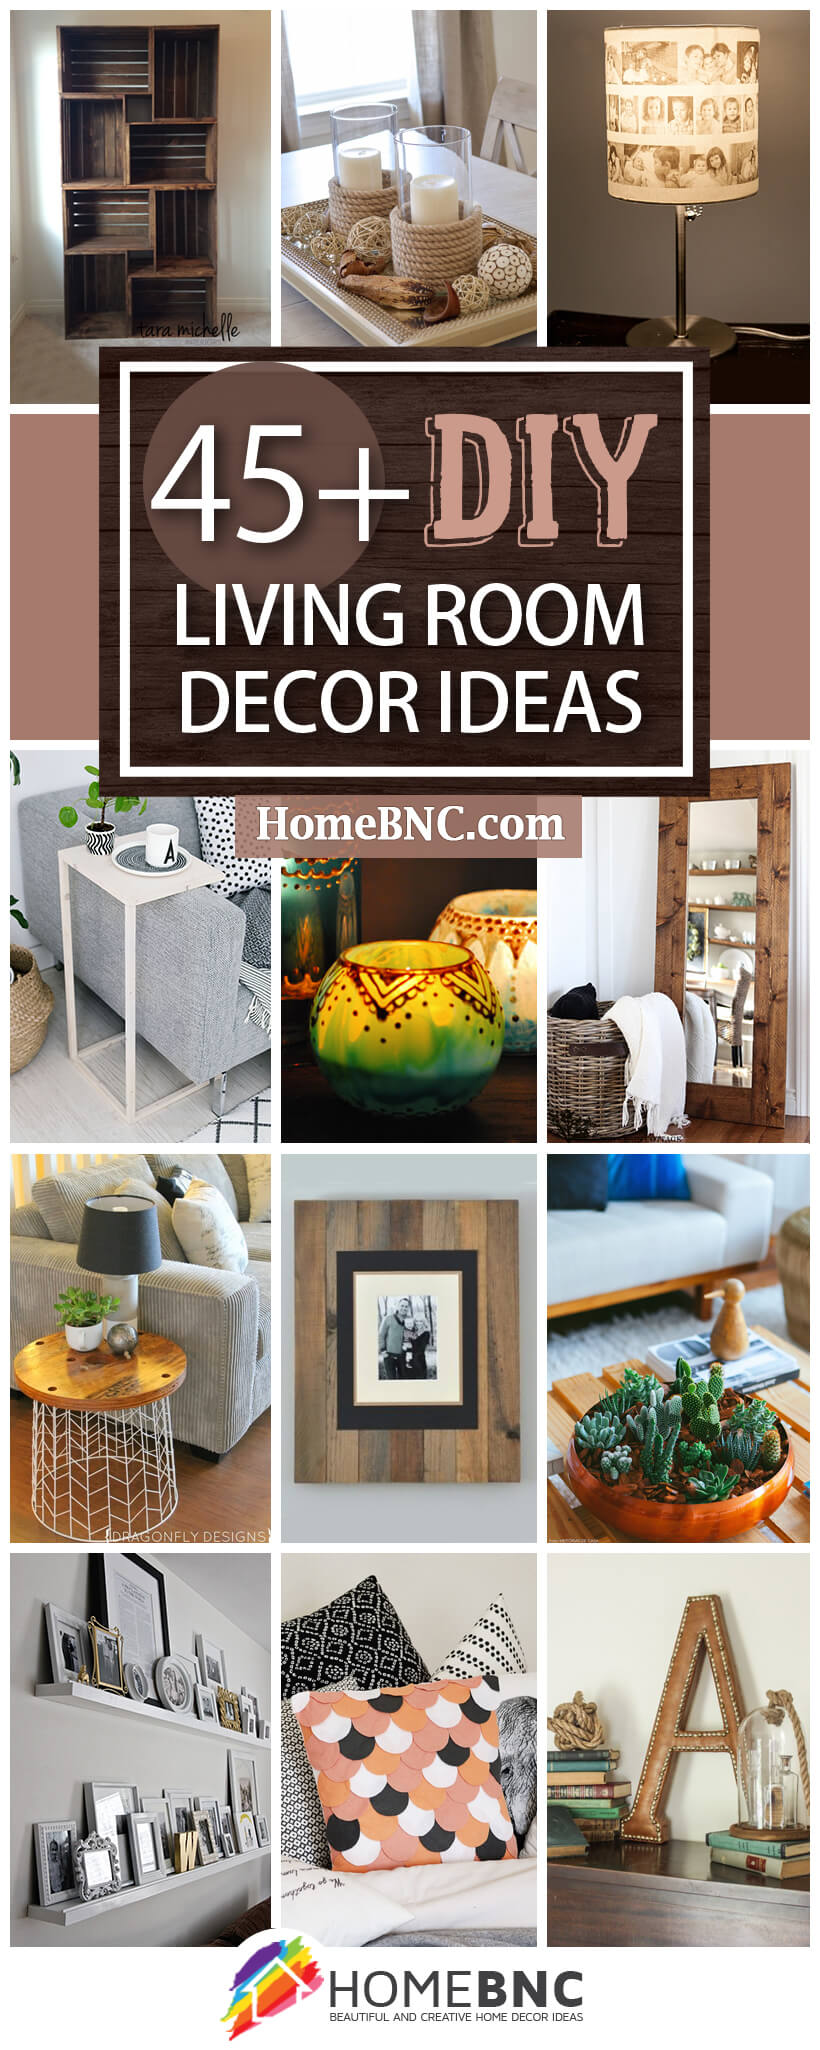 45+ Beautiful DIY Living Room Decorating Ideas For A Cheap And Easy Remodel